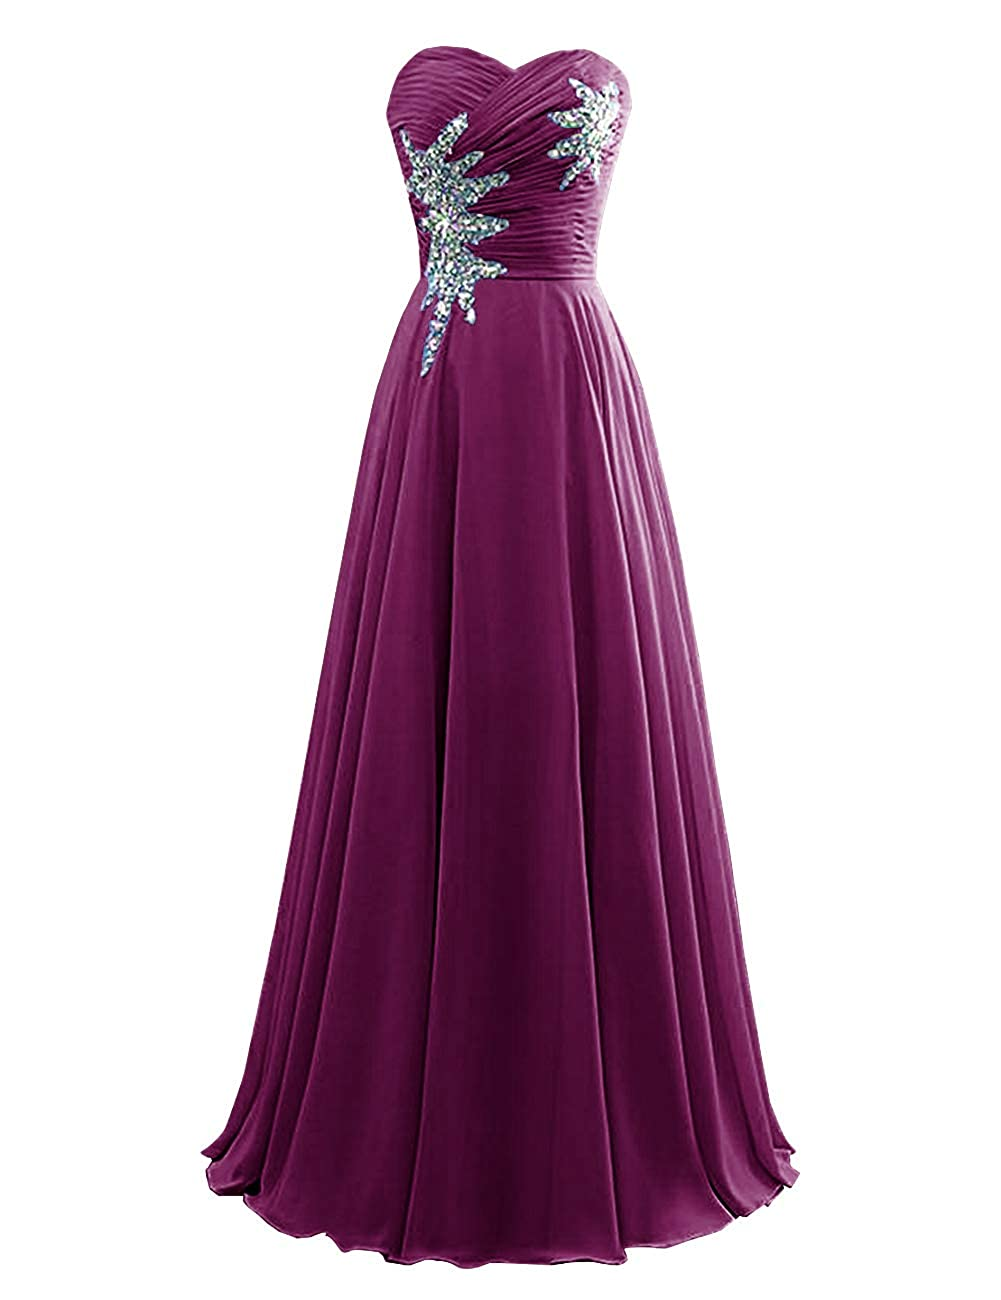 Grape Women's Strapless Bridesmaid Dresses Beaded Prom Wedding Party Gowns